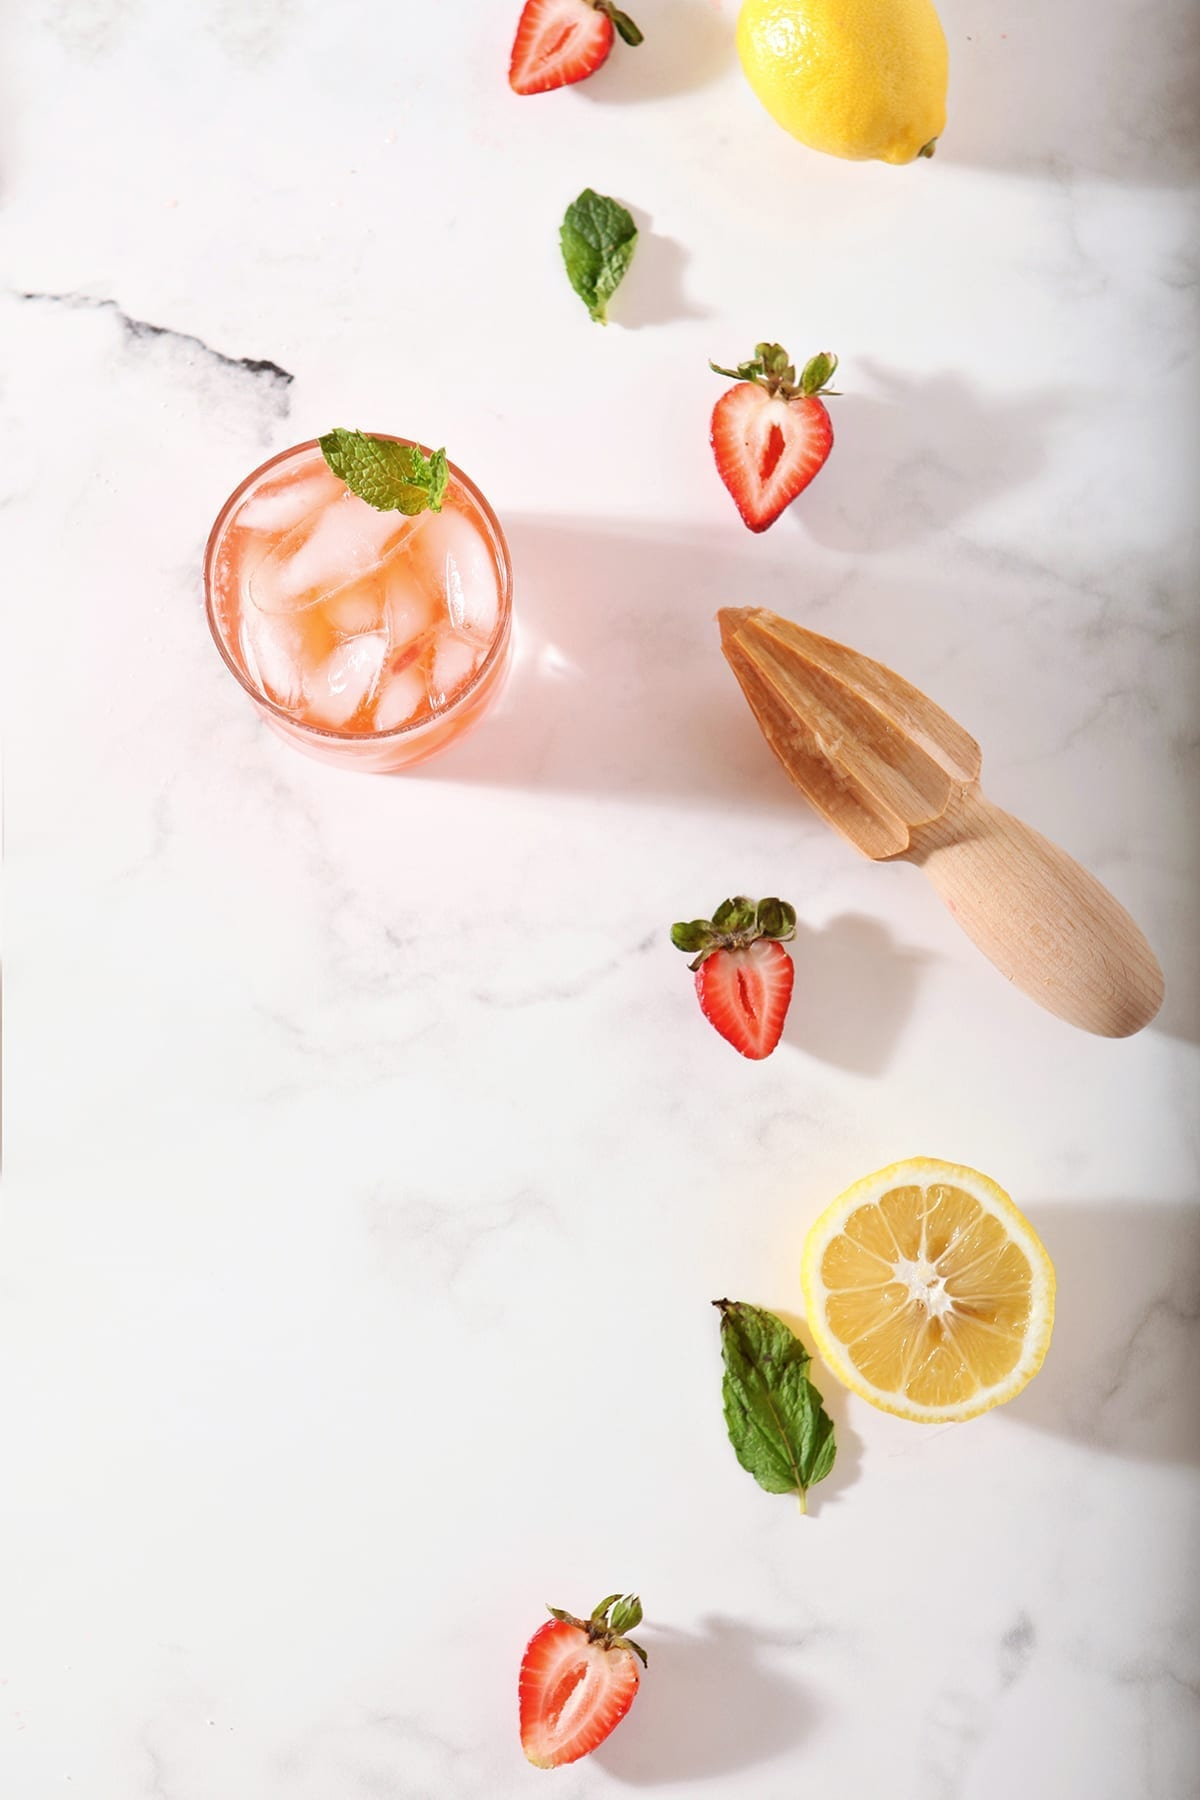 A glass of Strawberry Lemonade with its ingredients on a marble counter